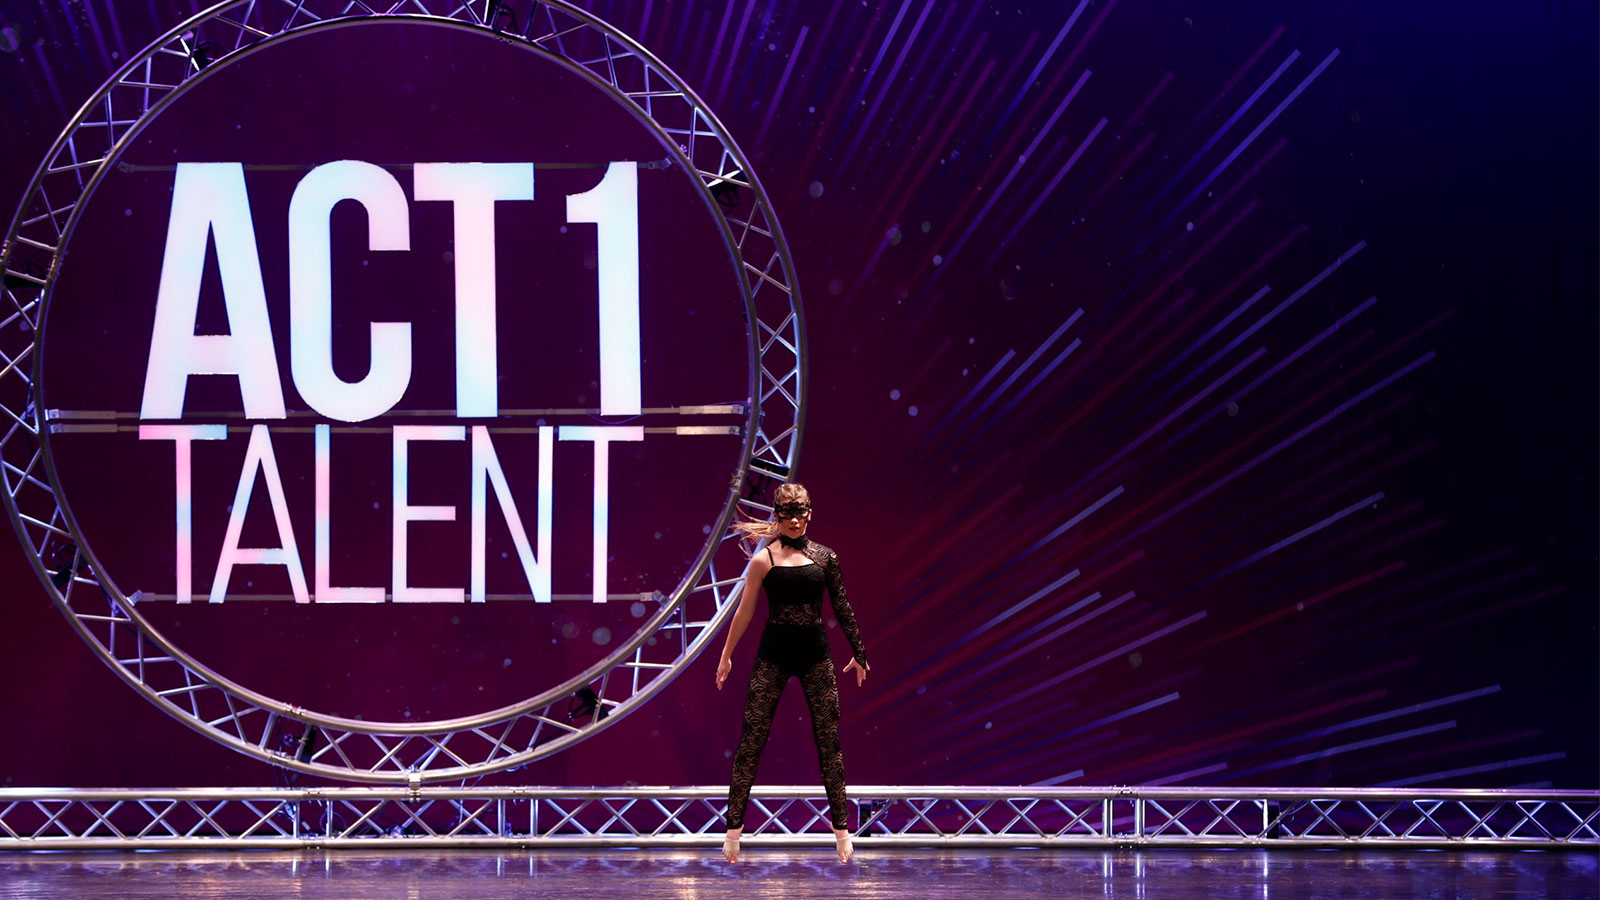 Image showing best branding project for ACT1 Talent